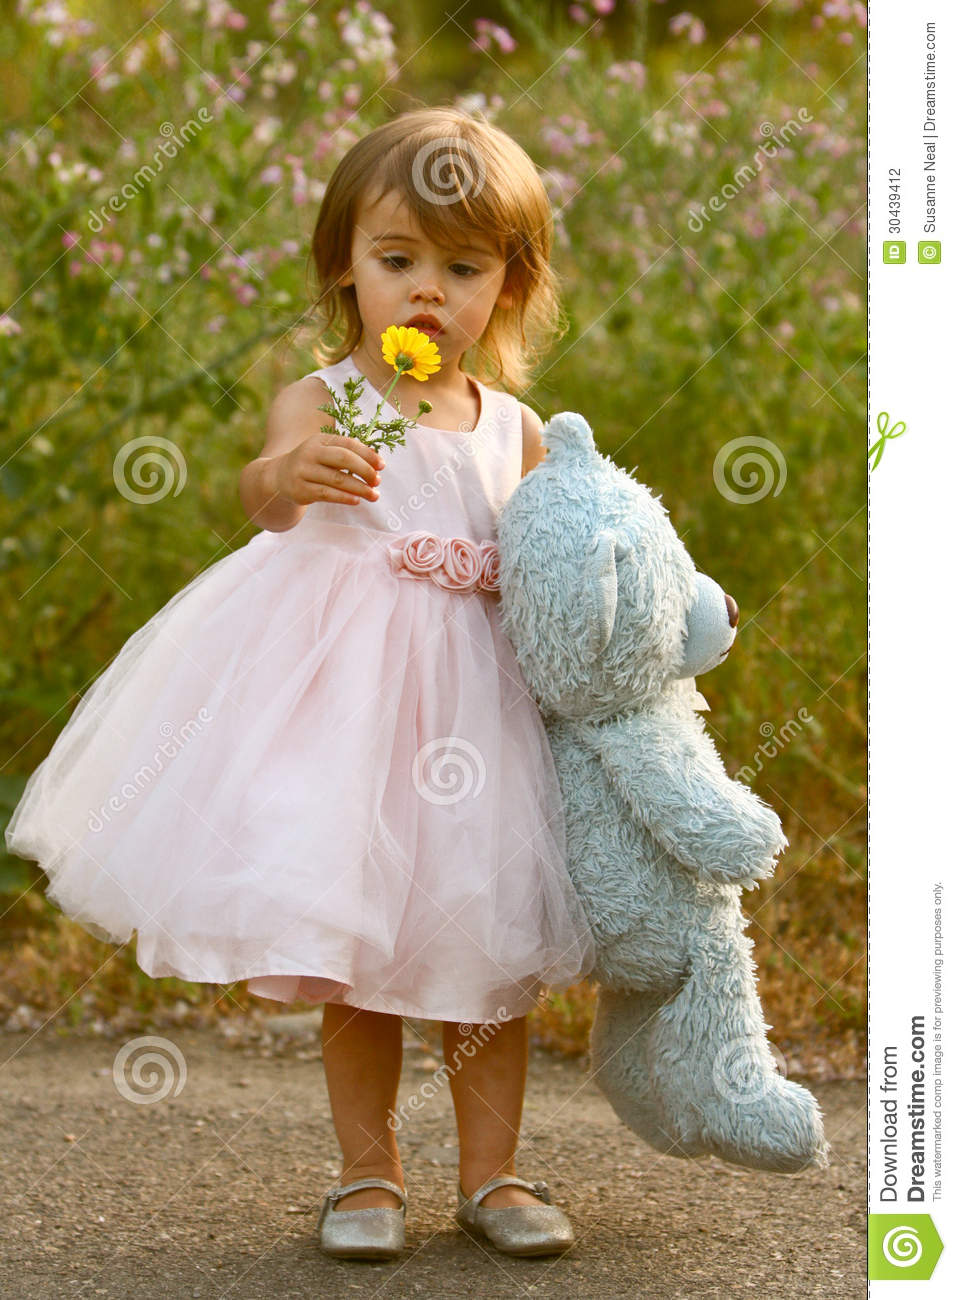 Dressy two-year-old girl in pink dress holding stuffed bear and flower